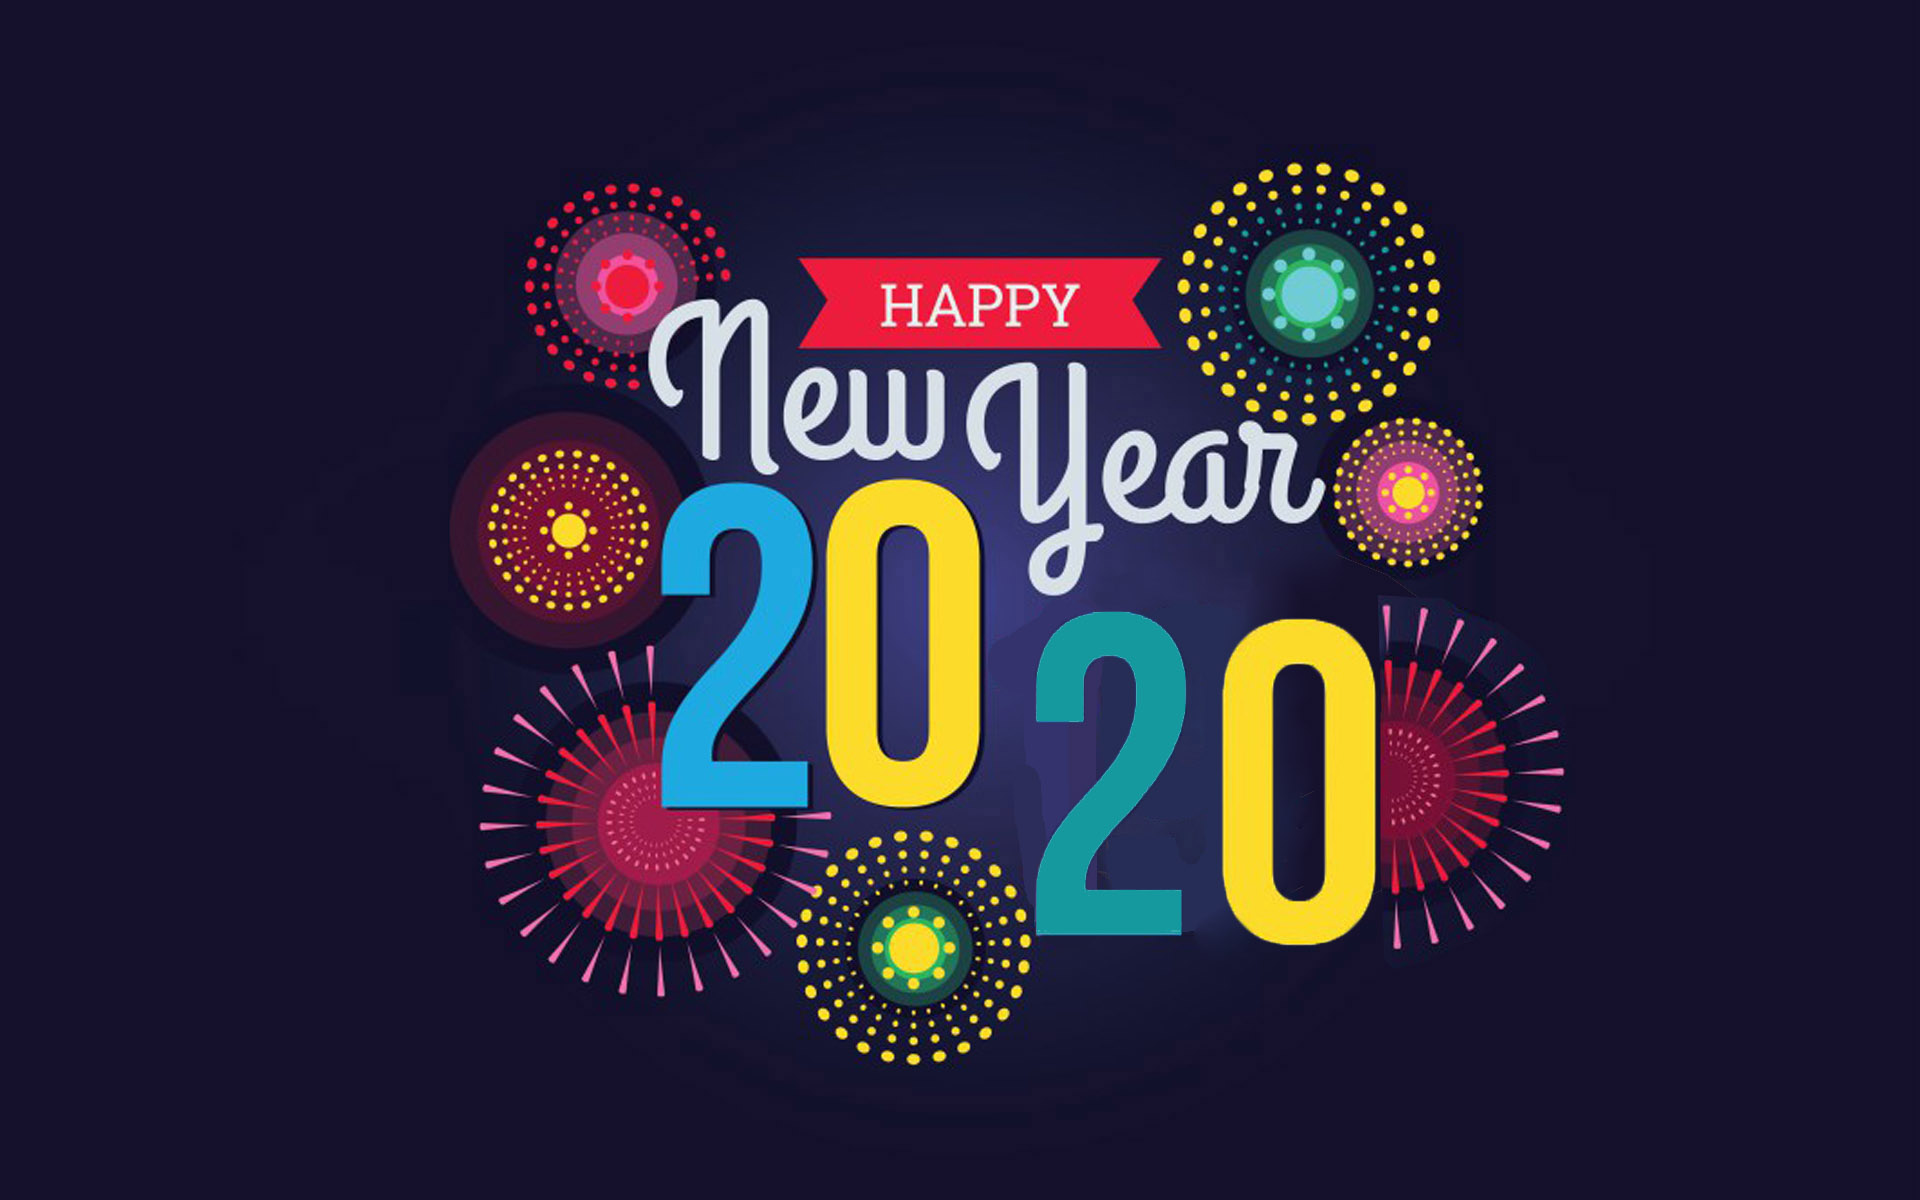 Happy New Year 2020 Fireworks Art Painted Wallpapers Hd 1920x1200 1920x1200